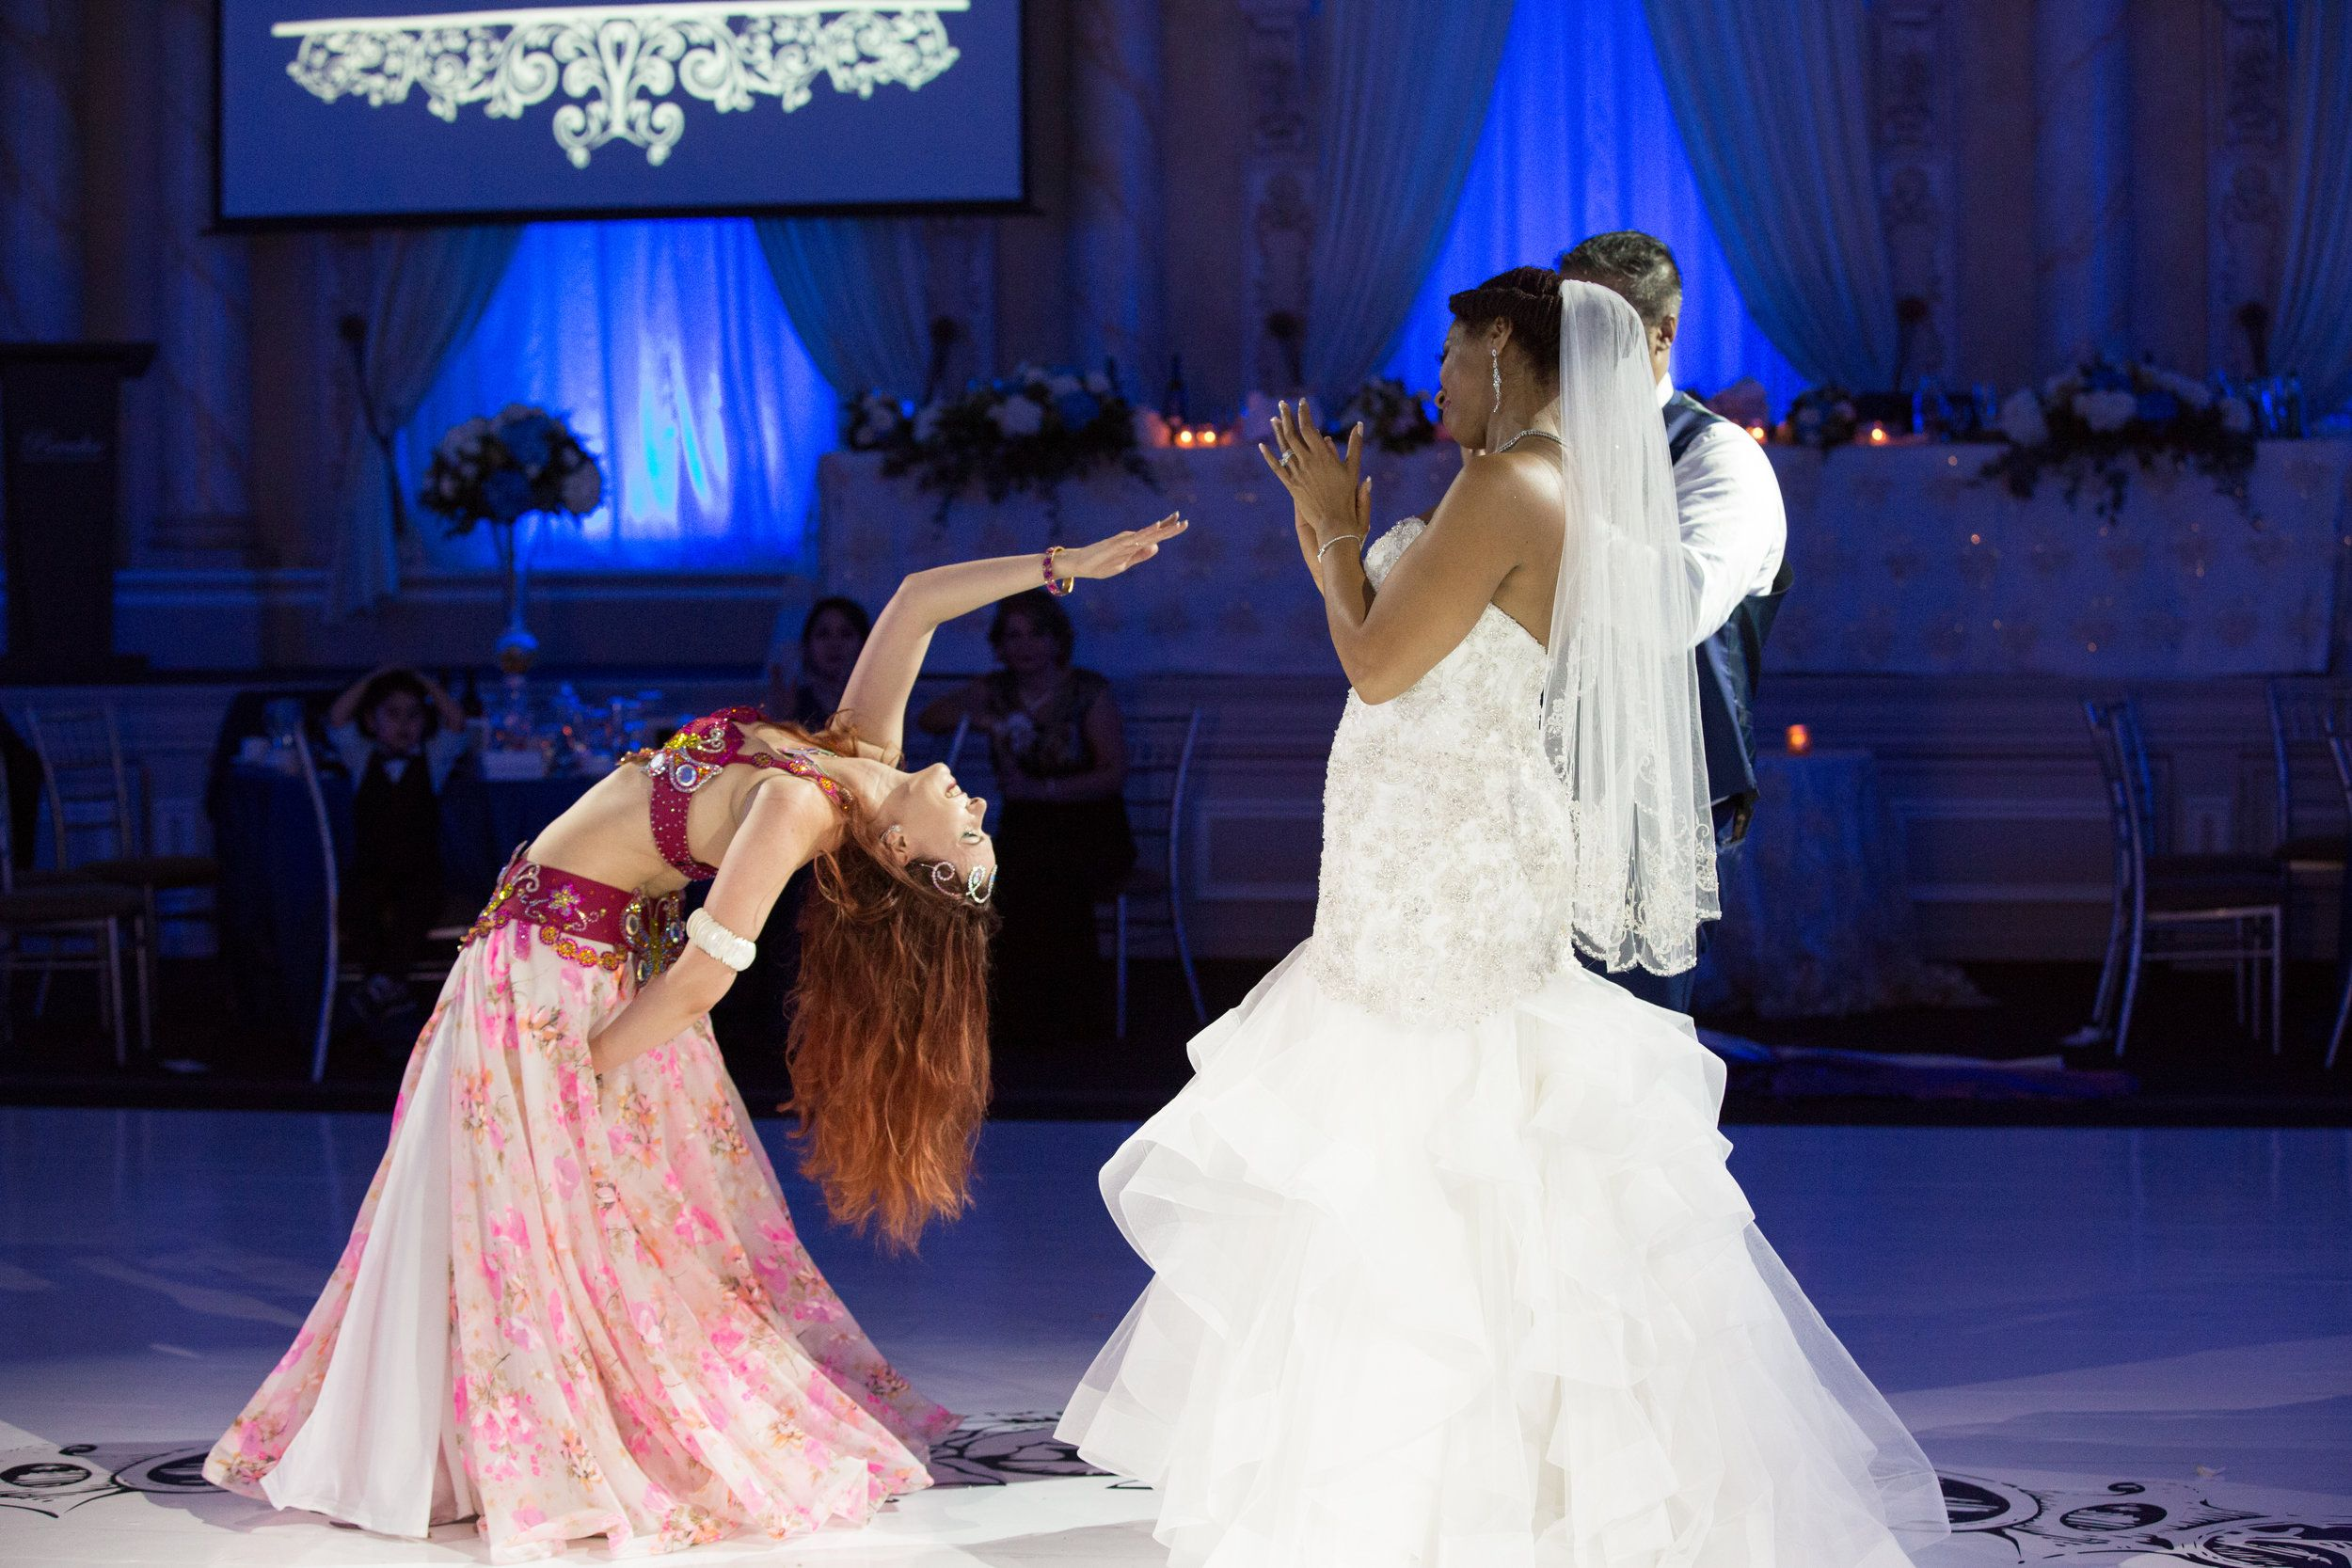 Belly Dance Performance At A Wedding Great Ideas For A Wedding Entertainment And Tips For Bride And Groom As Well A Wedding Entertainment Bride Belly Dancers